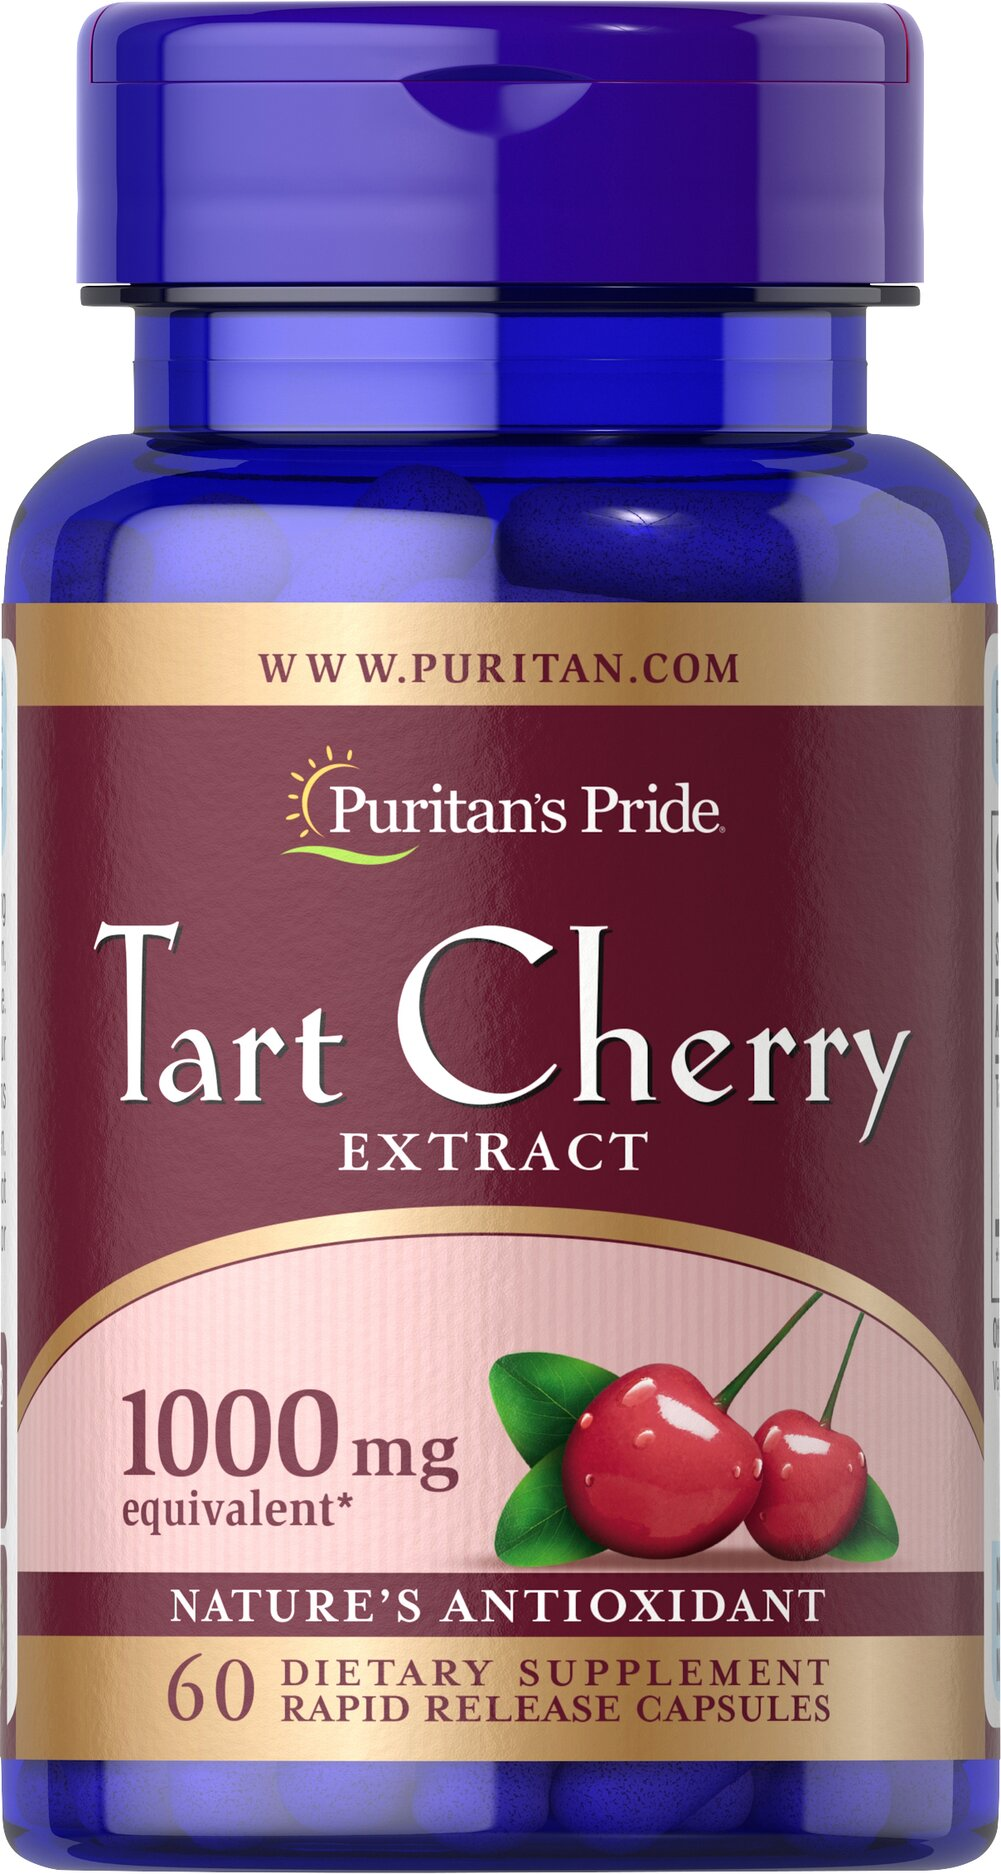 Tart Cherry Extract 1000 mg <p>Cherries are known for their natural content of antioxidants and other beneficial components. Now you can easily obtain the benefits of Tart Cherry in our convenient Tart Cherry capsules. Each serving contains a 4:1 extract of Tart Cherry to help retain the most important constituents.</p> 60 Capsules 1000 mg $18.99